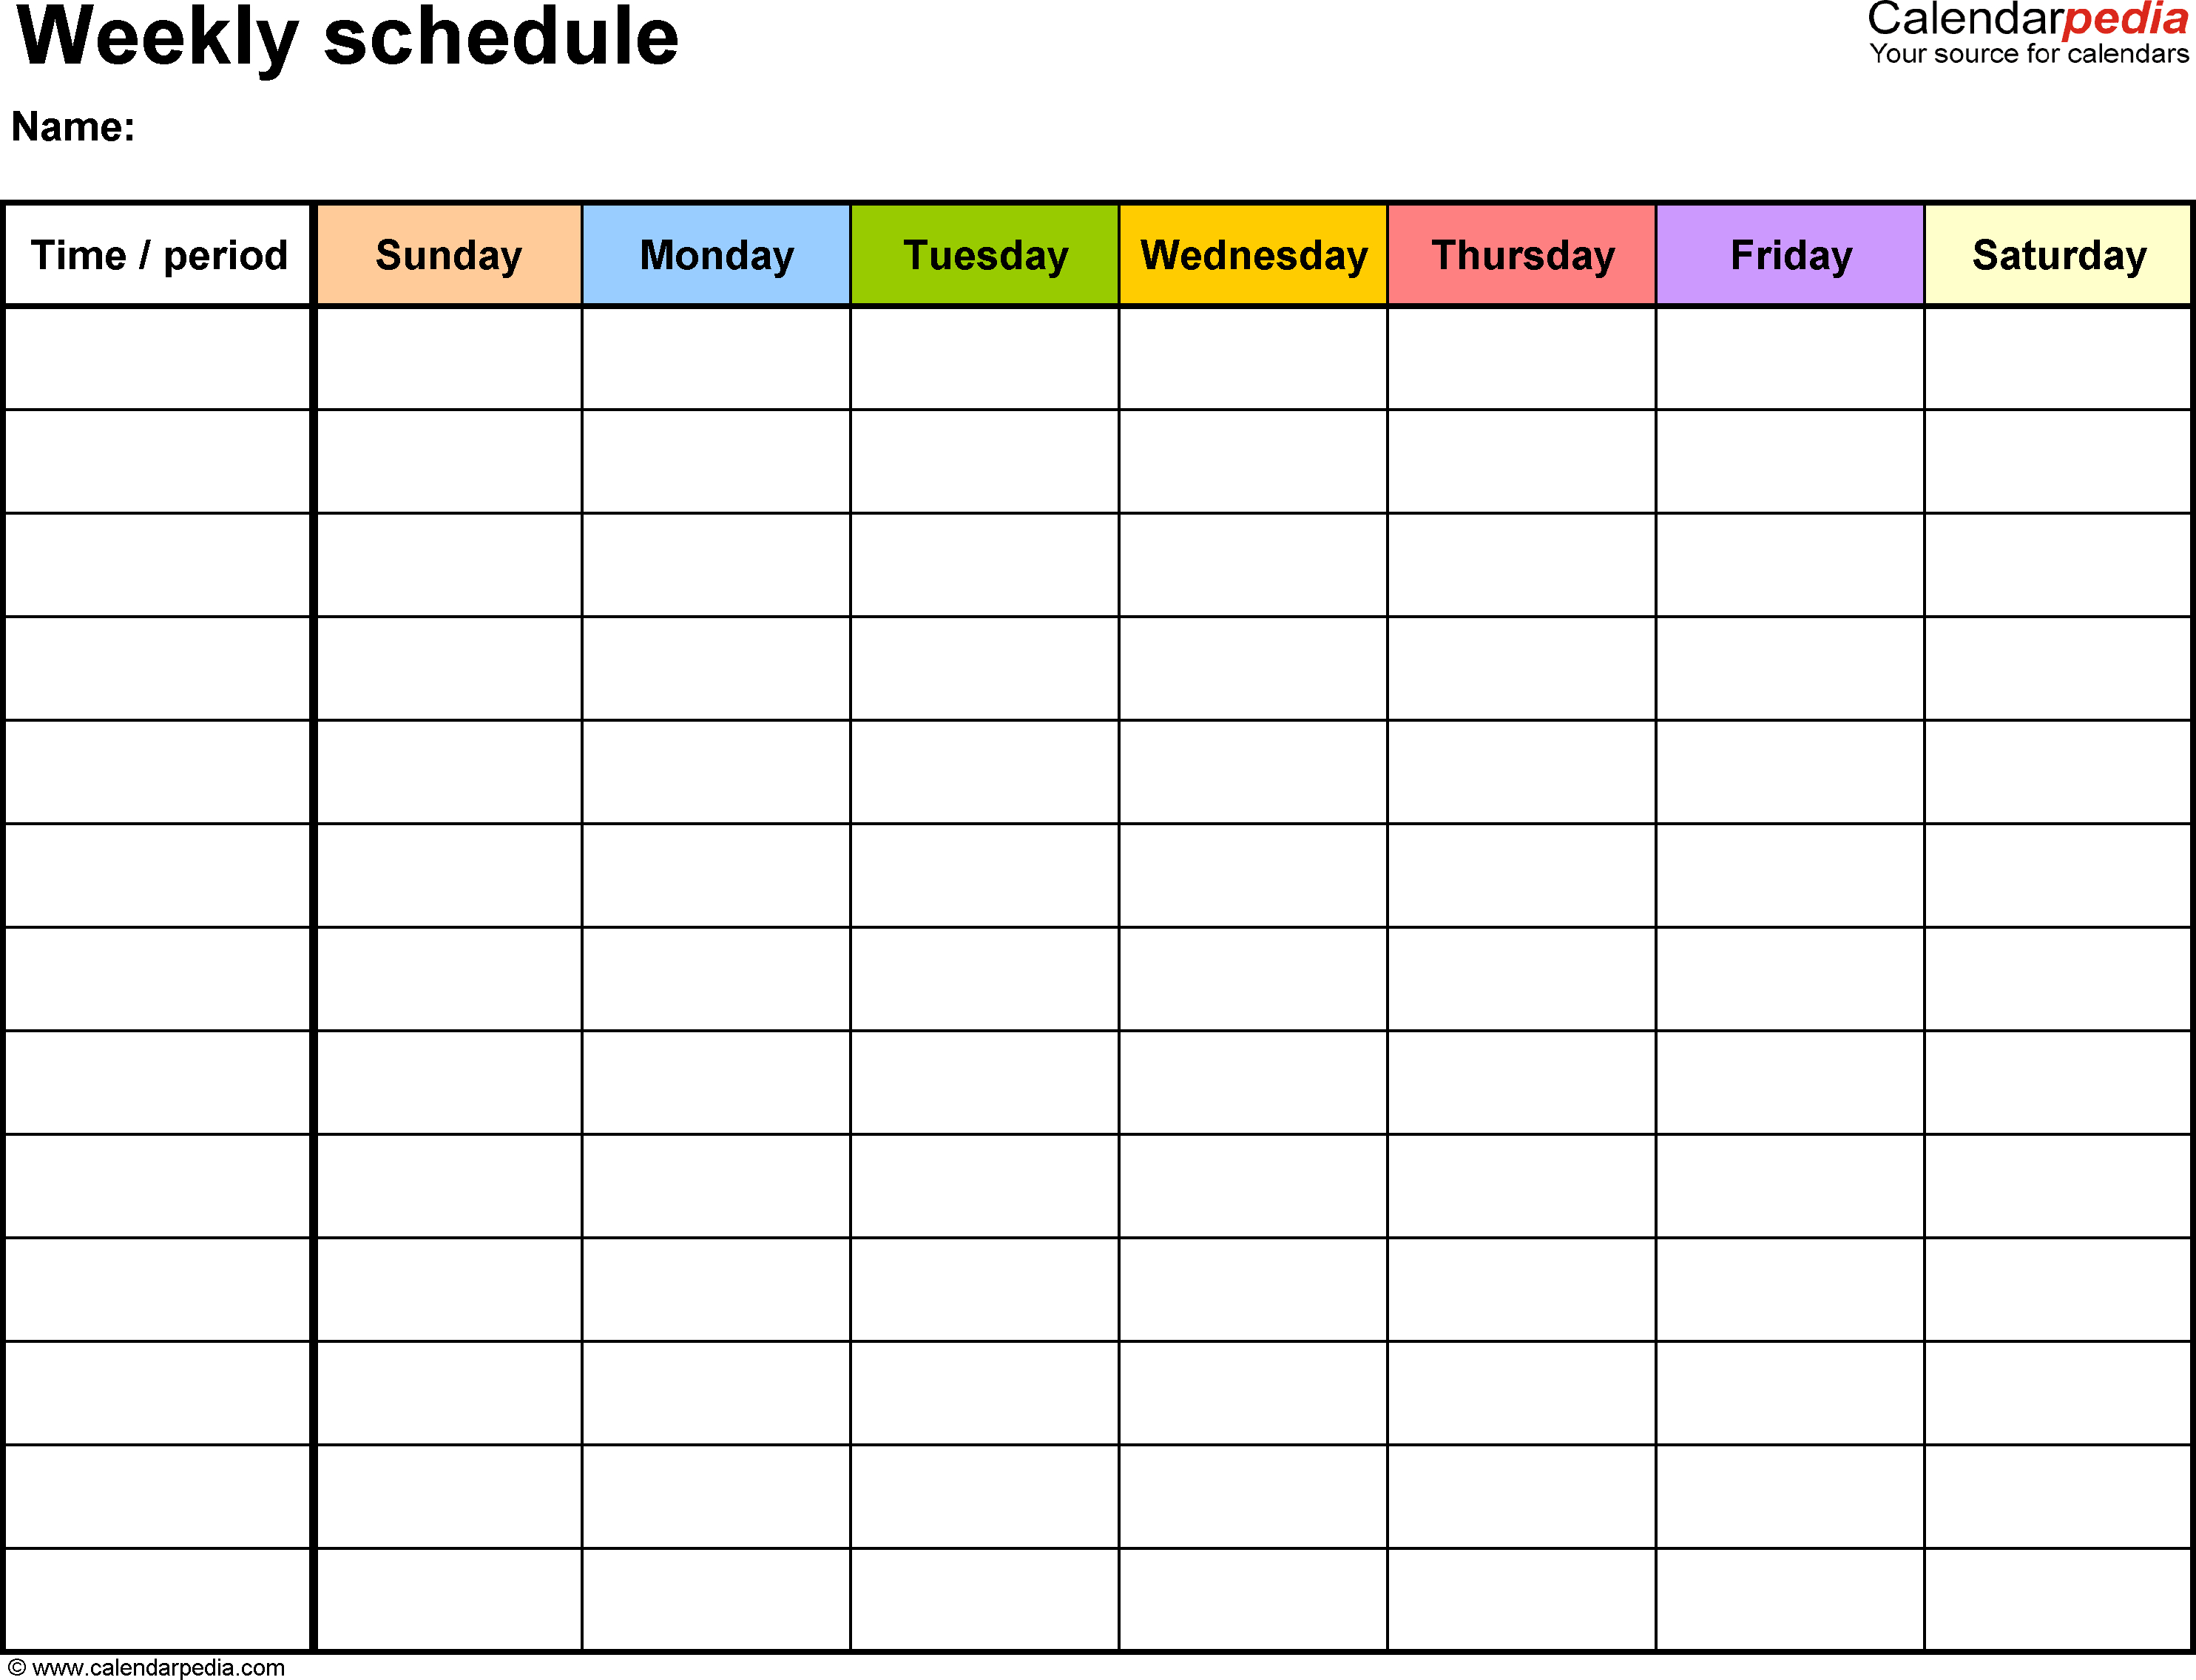 Free Weekly Schedule Templates For Excel - 18 Templates throughout Blank Calendar Printable With Times